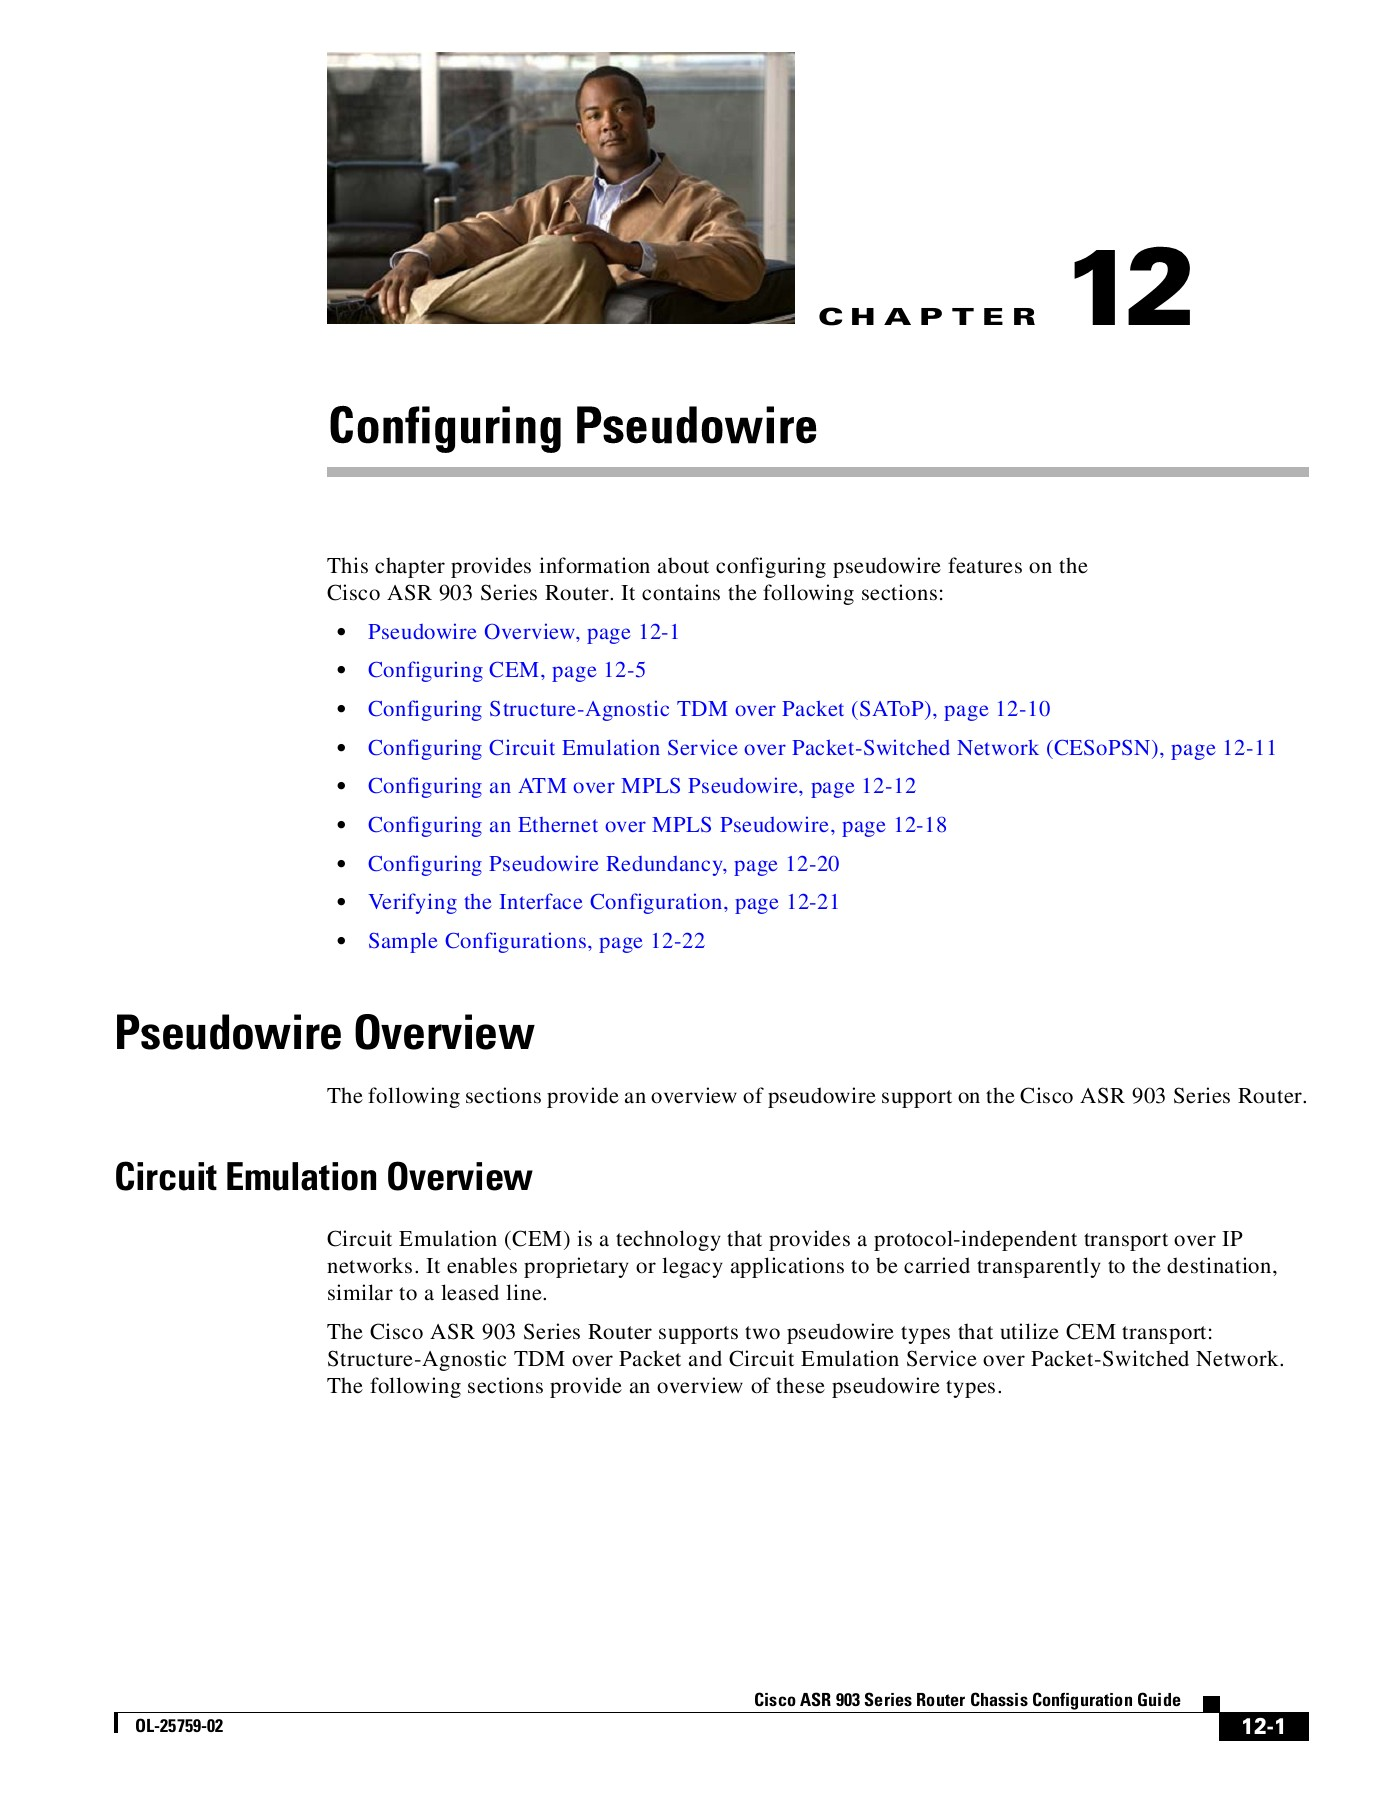 Configuring Pseudowire - Cisco Systems Pages 1 - 32 - Text